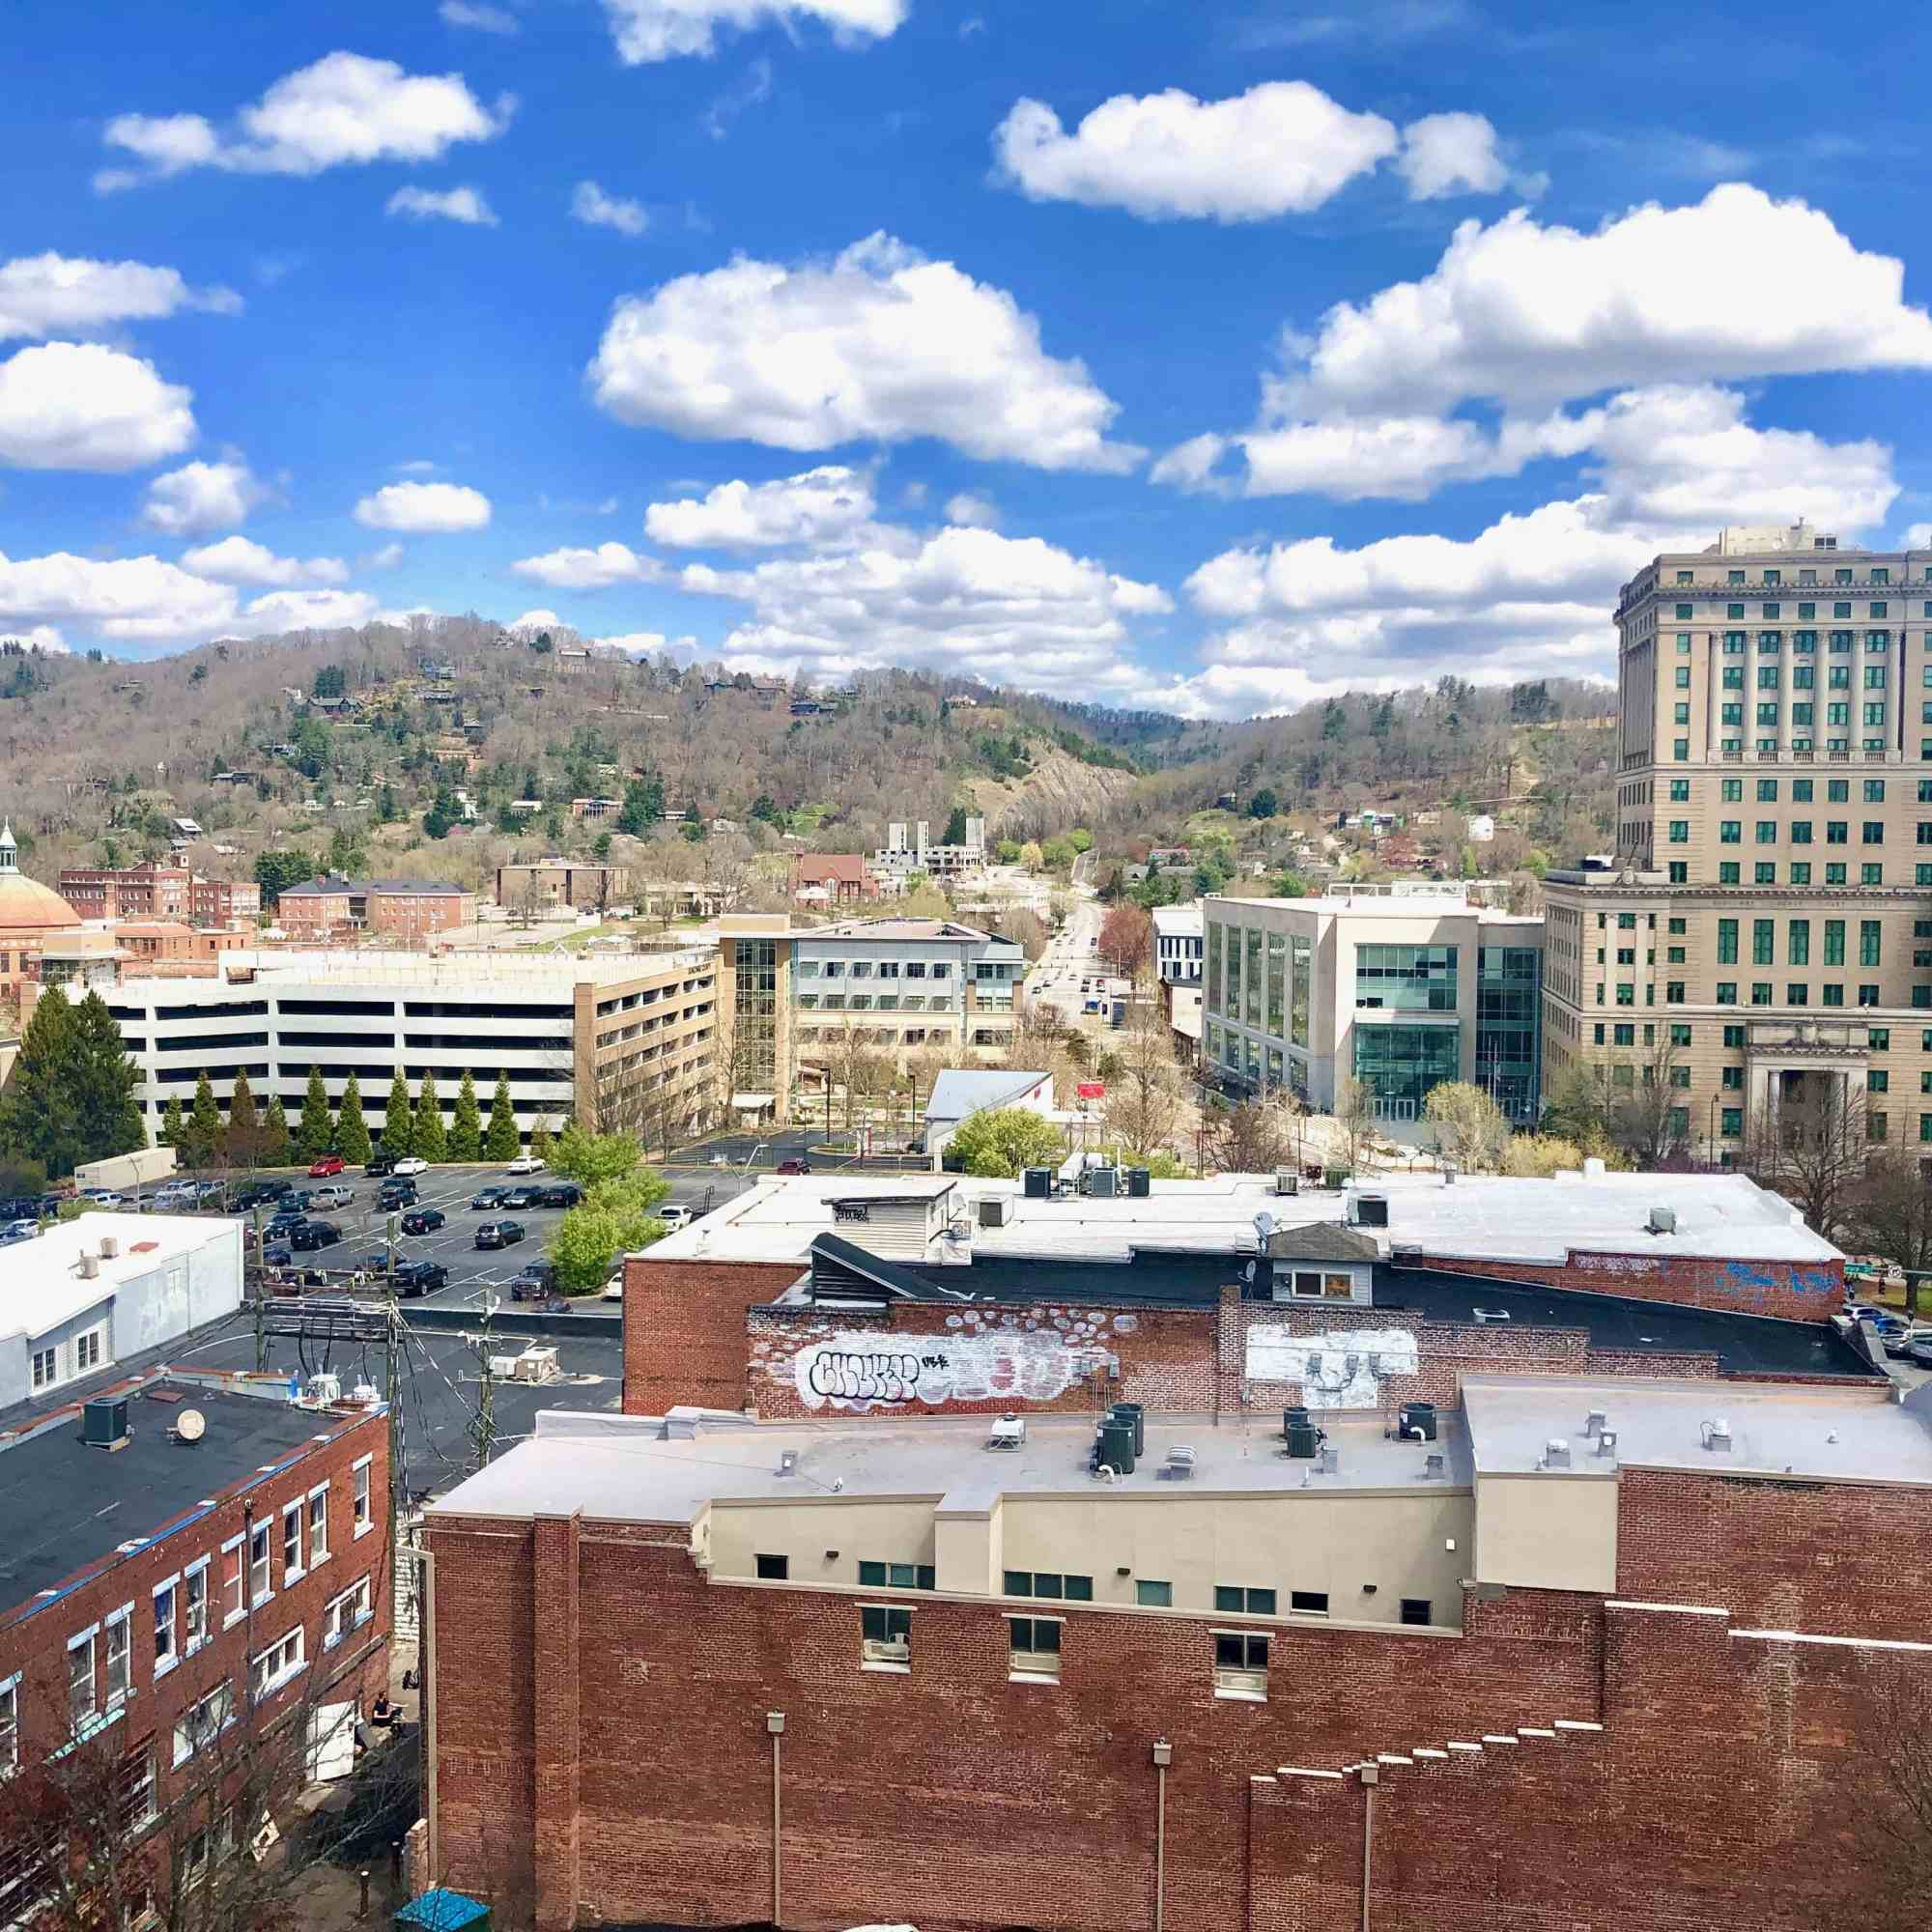 12 rooftop views in Asheville with view of buildings and mountains in Asheville NC